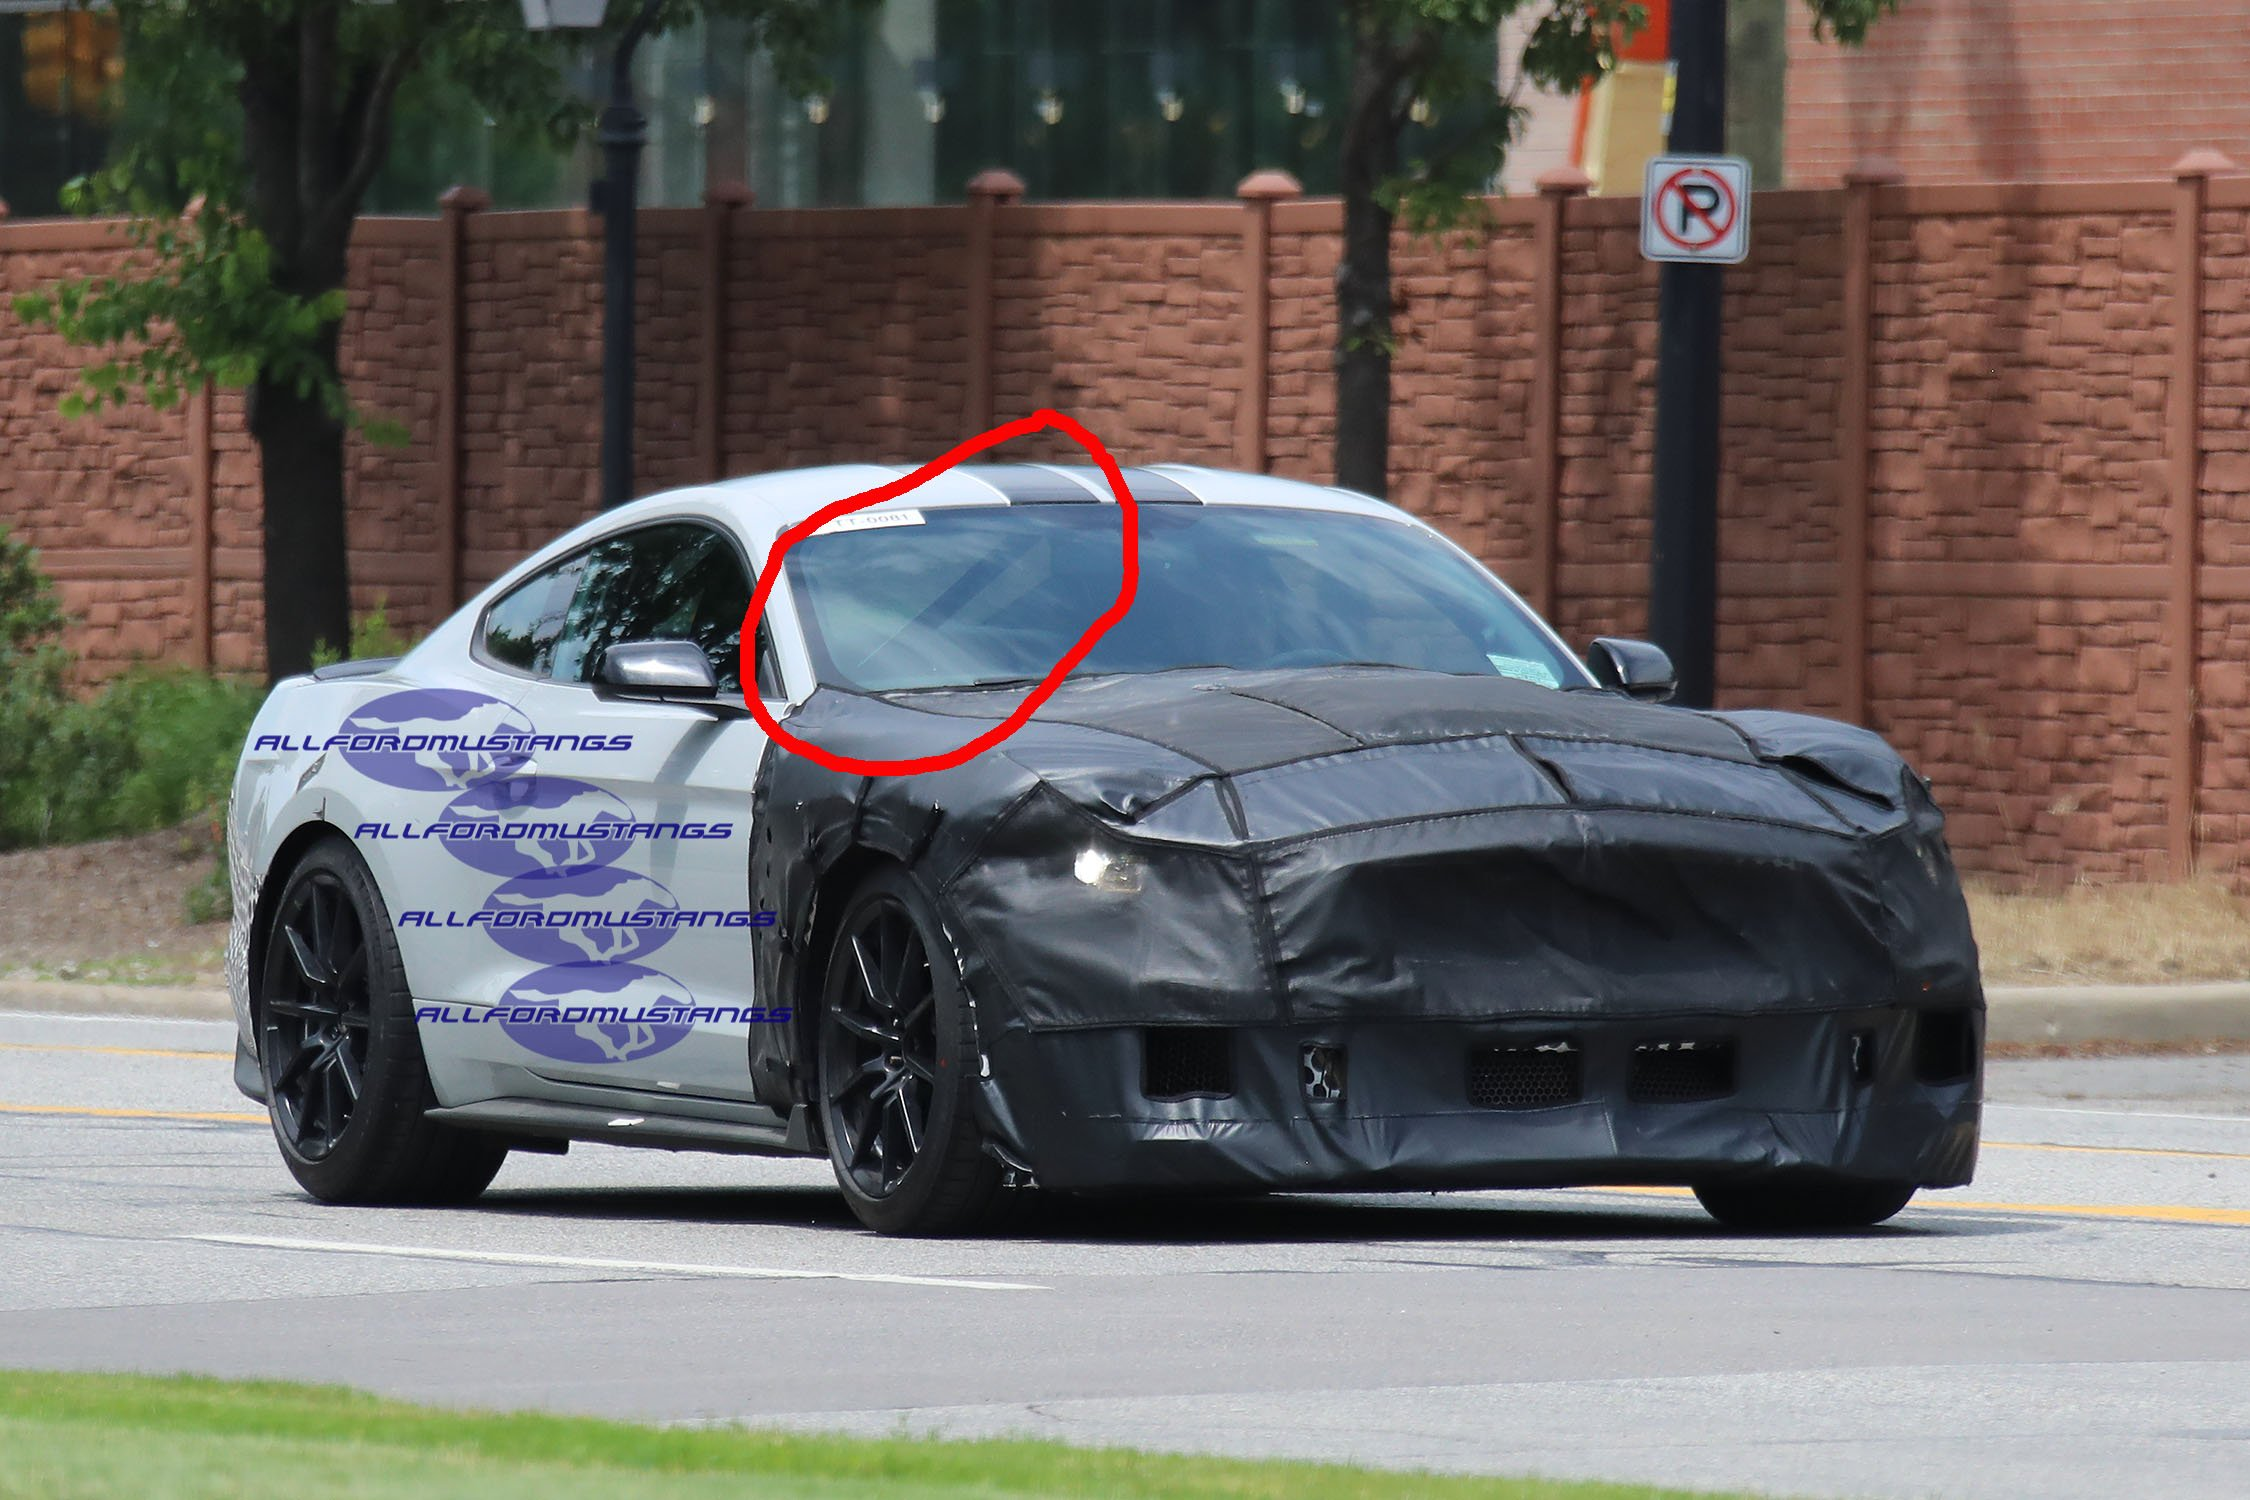 2019 Shelby GT500 Spotted With a Cage - AllFordMustangs